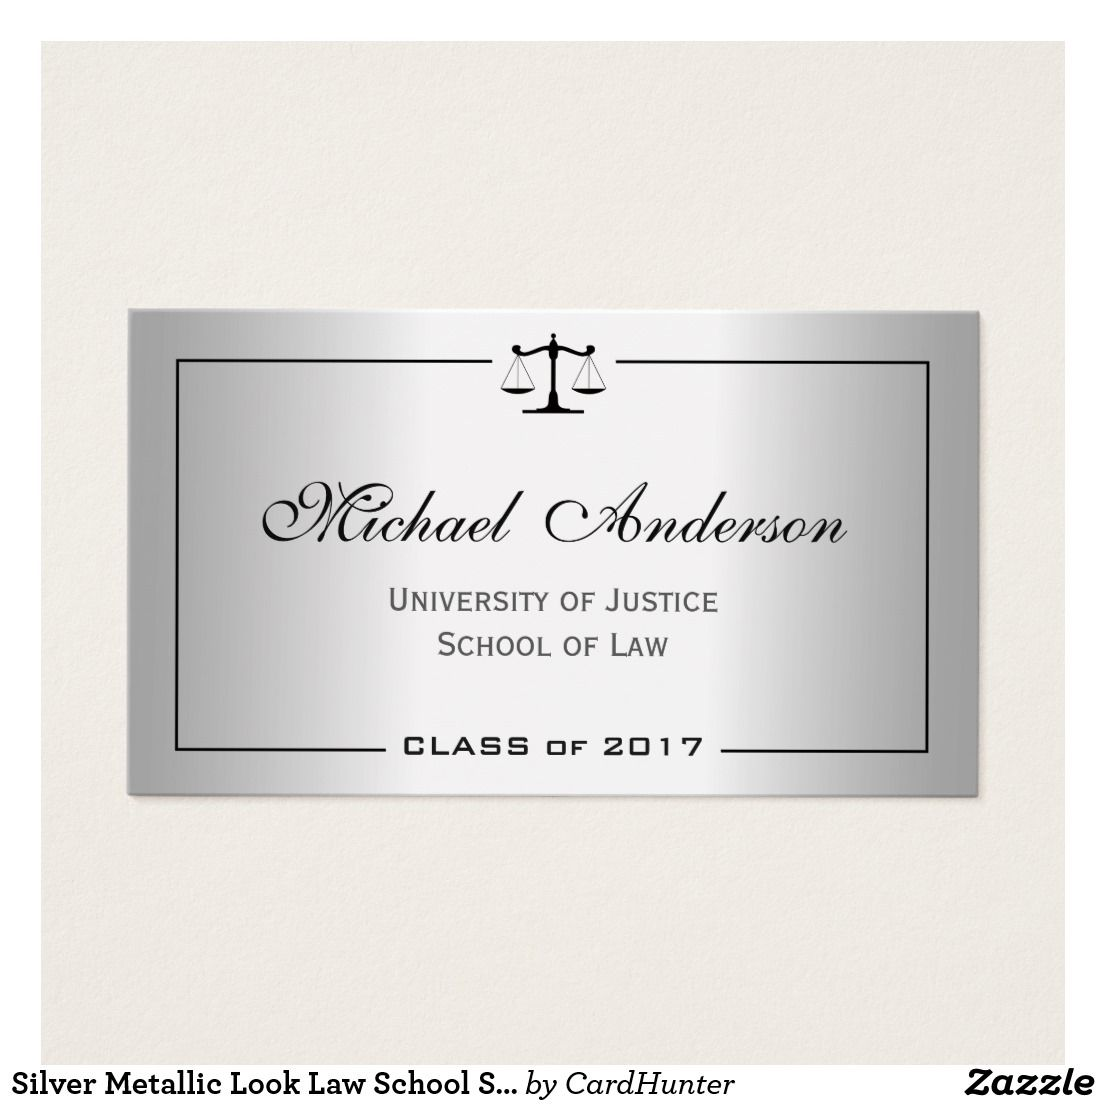 Silver Metallic Look Law School Student Calling Card | Pinterest ...